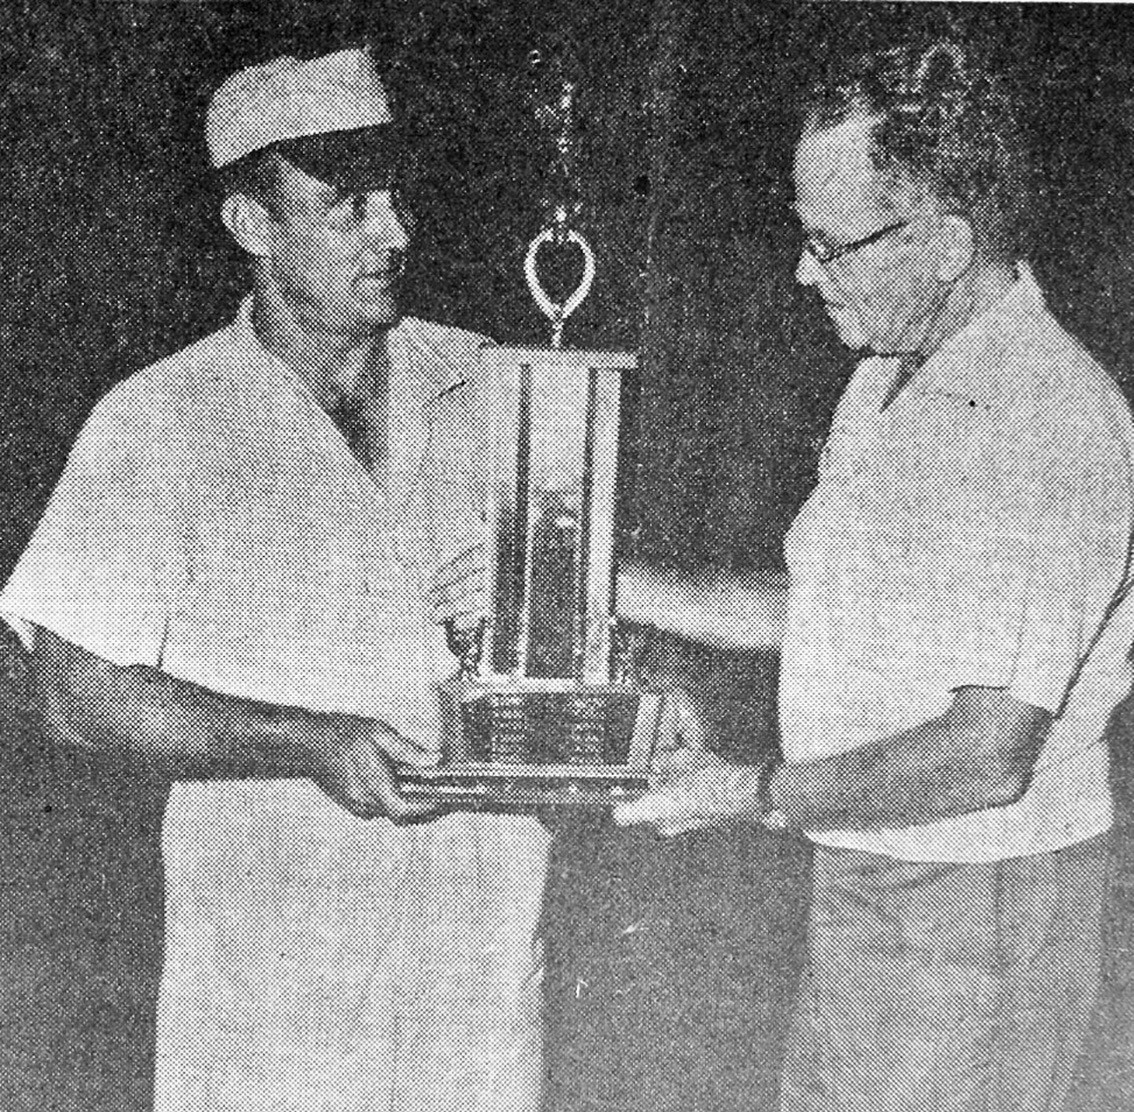 Championship Trophy is awarded Falcon Skipper, Jim Malone, by L-L President P.W. McDaniel. Photo original ran in the July 13, 1966 edition of the Pleasanton Express.